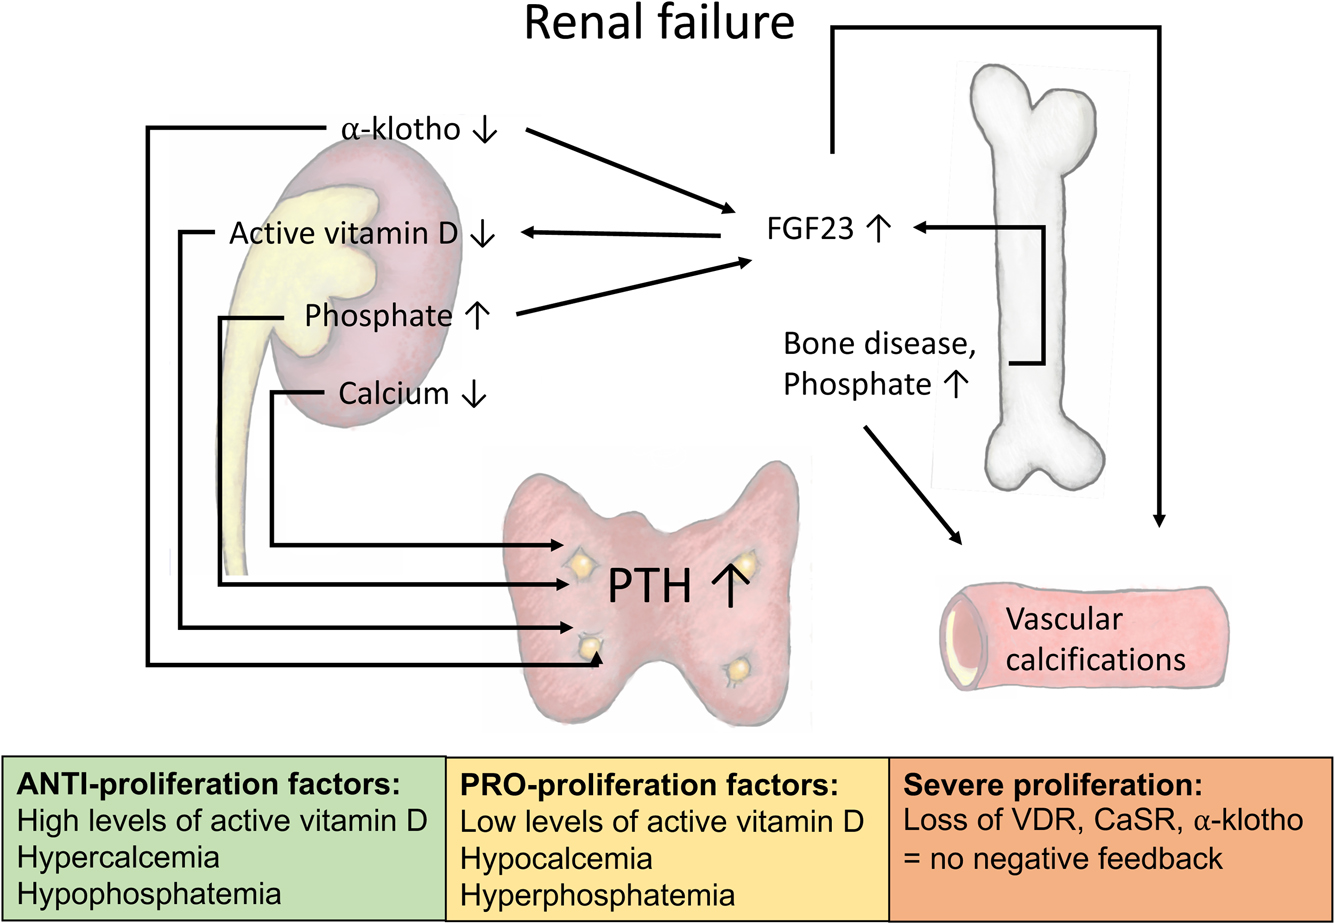 The Treatment Of Renal Hyperparathyroidism In Endocrine Related Cancer Volume 27 Issue 1 2020